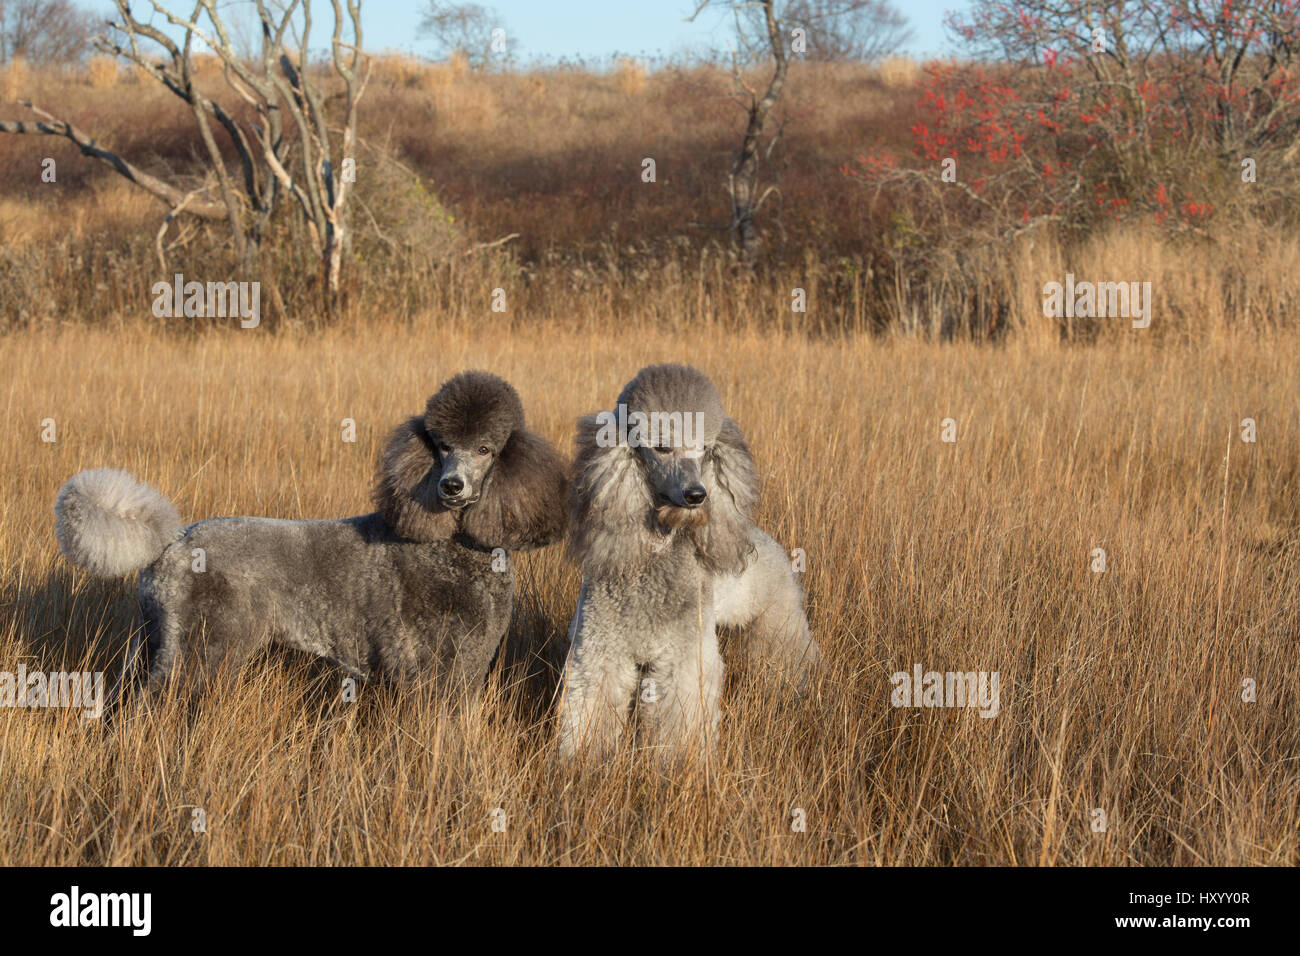 Domestic Standard poodles in salt marsh, Waterford, Connecticut, USA. December 2012. - Stock Image